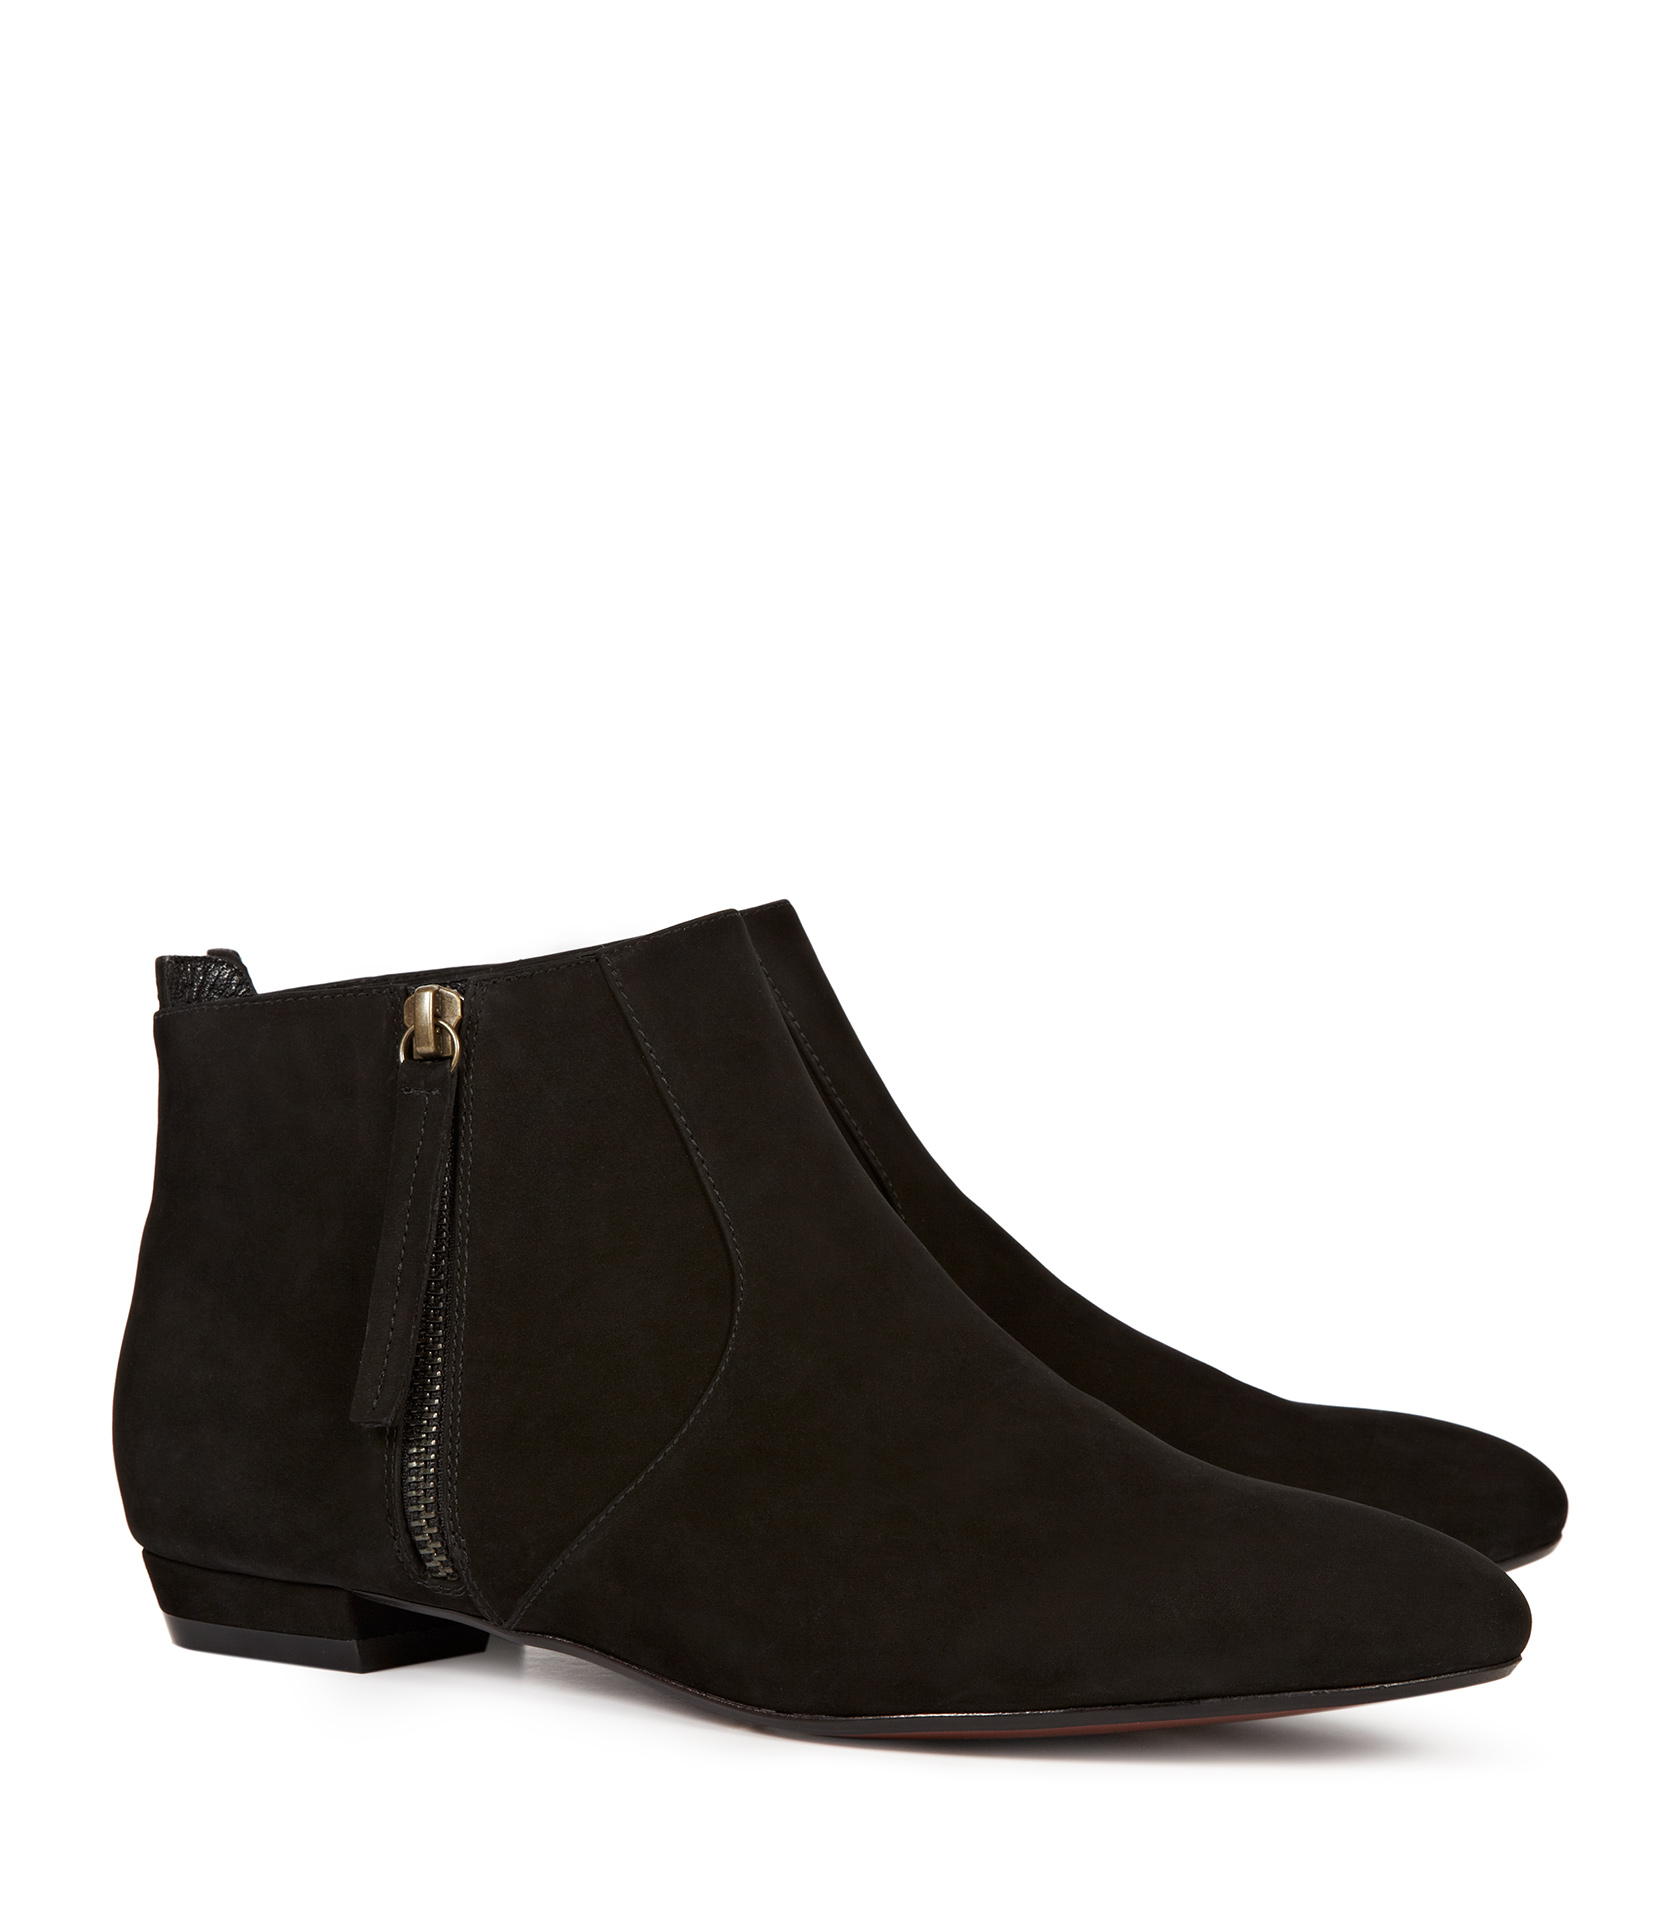 Flat Ankle Boots Suede jJoSokN8